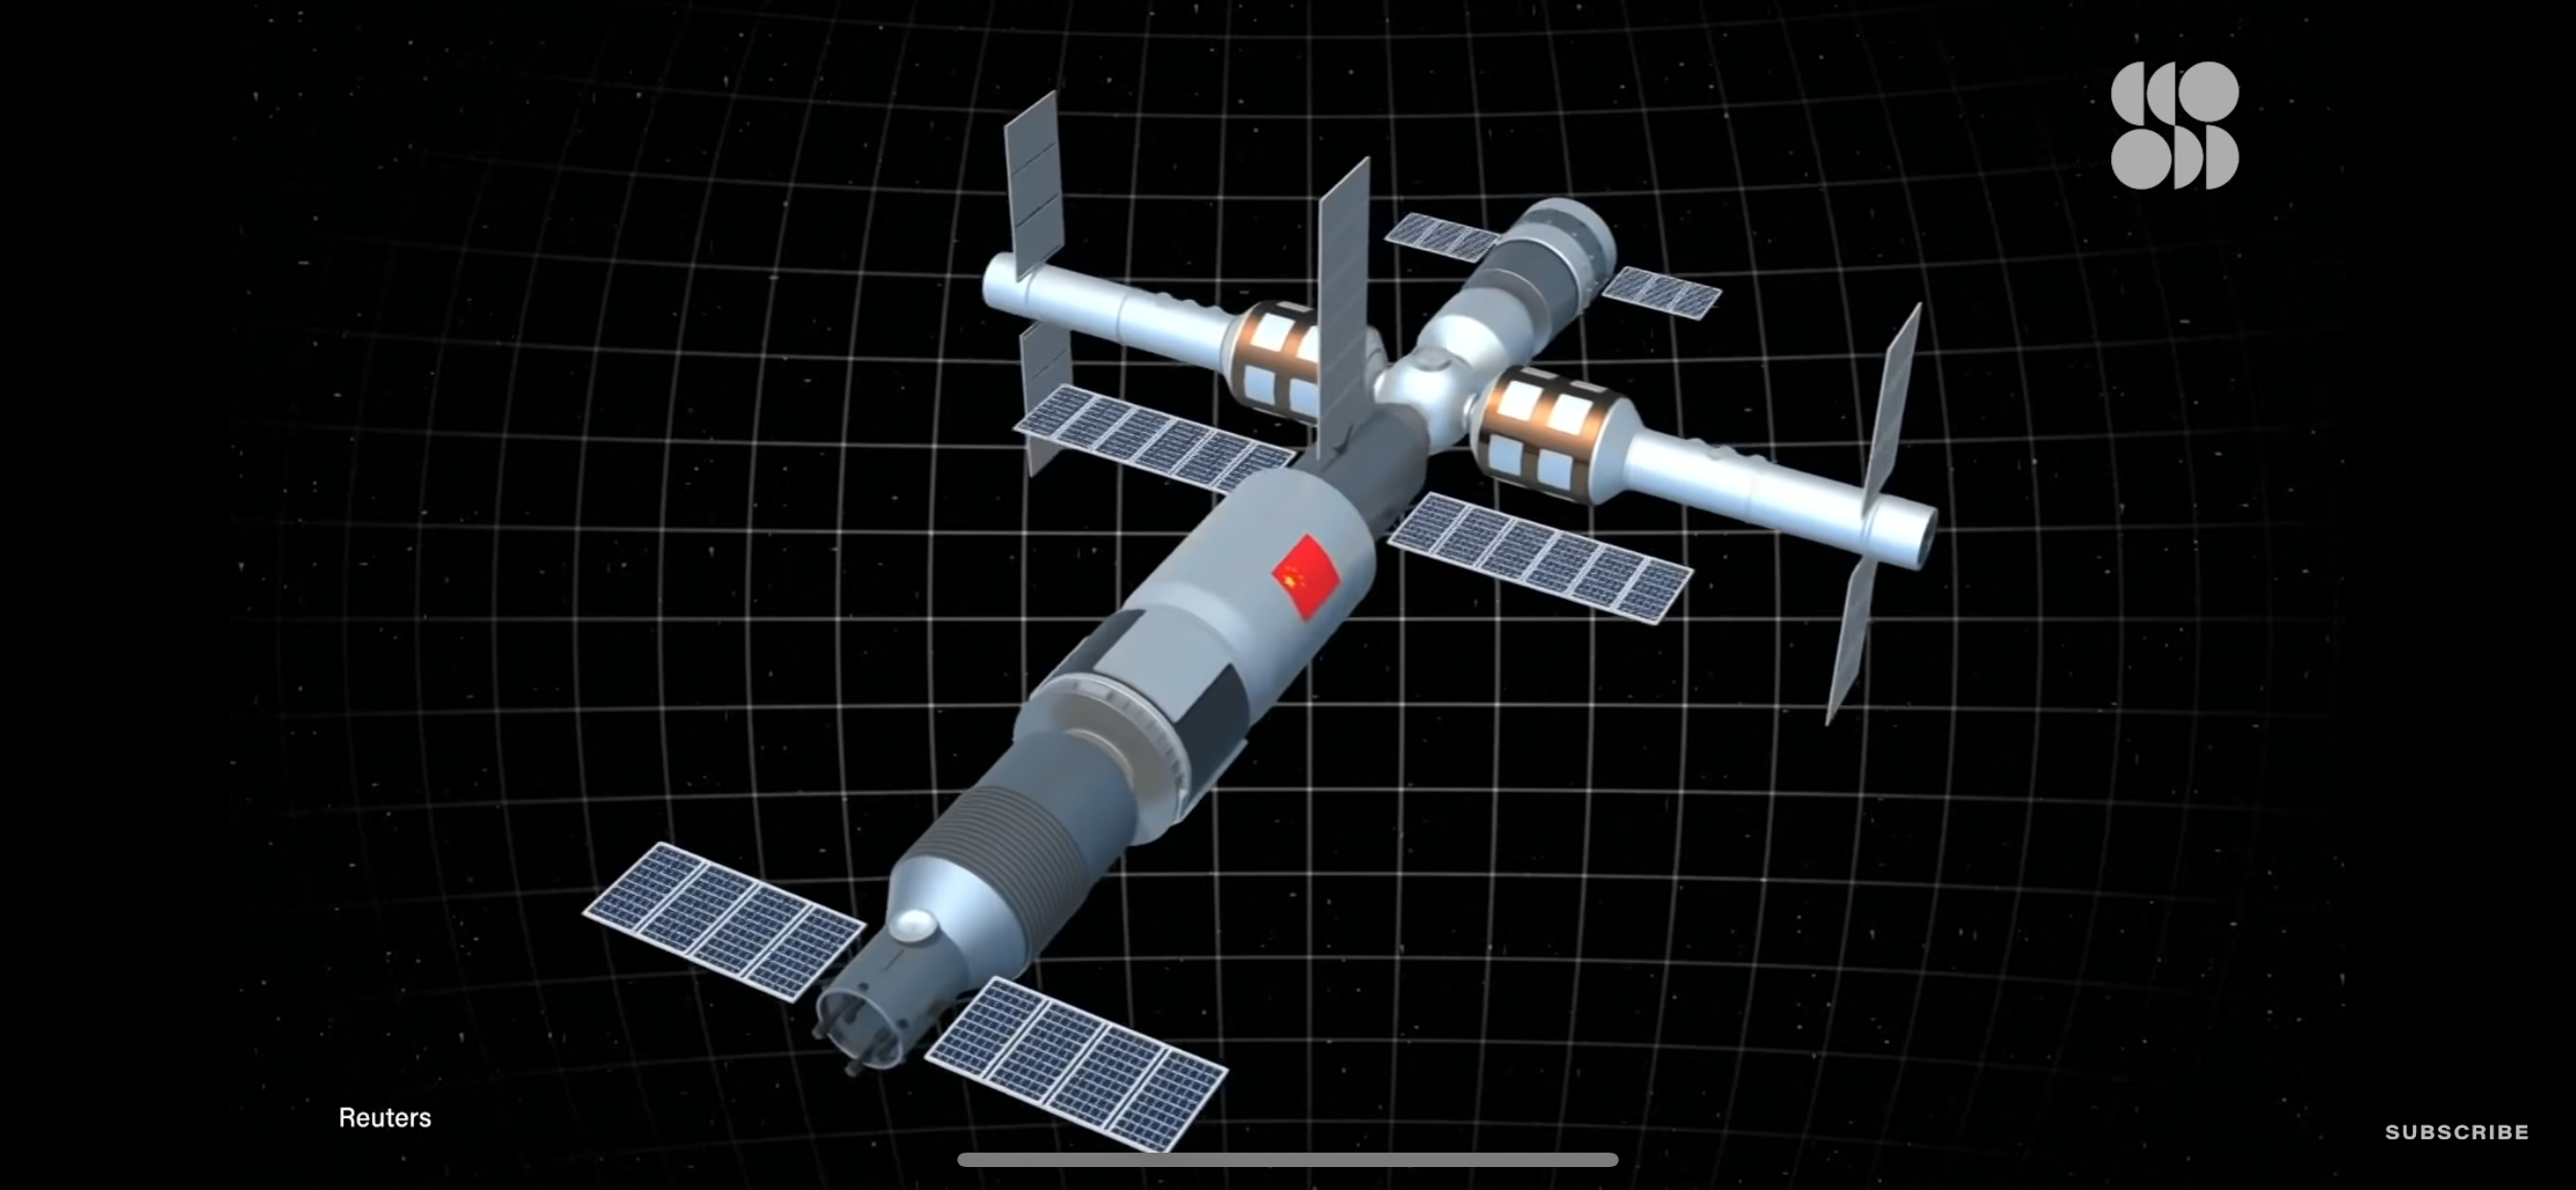 China Space Station on track to be built in 2 years